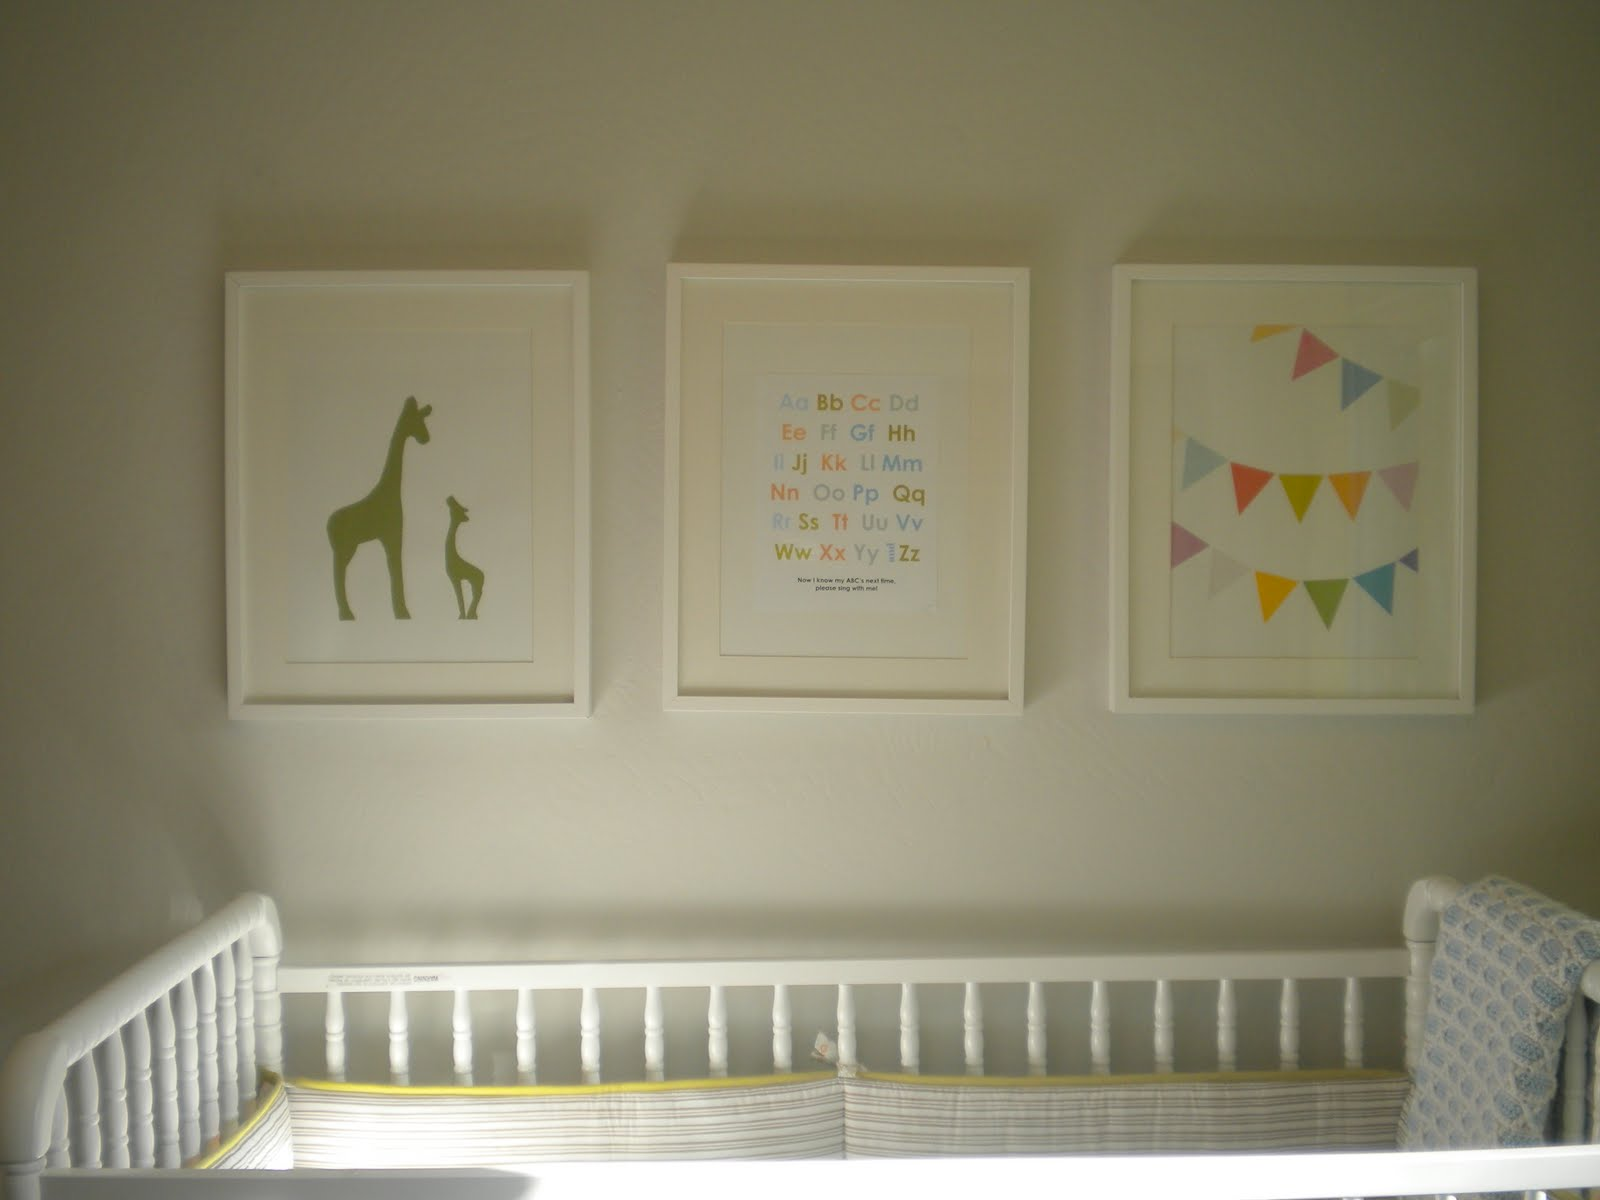 Nursery Wall Framed Prints Sofia Butella